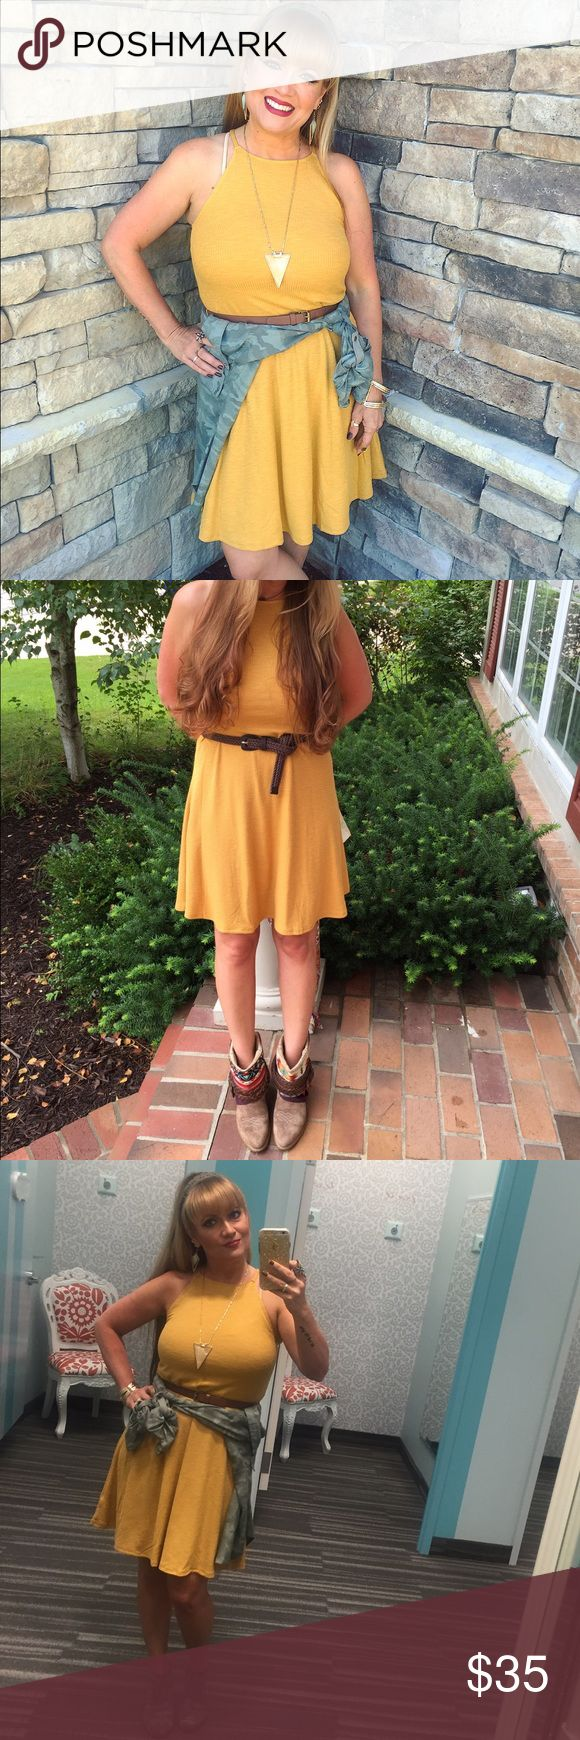 Autumn Gold ribbed dress Gorgeous & flattering gold dress. Fitted bust and skater skirt style. Comes with belt. Size small. Dresses Midi